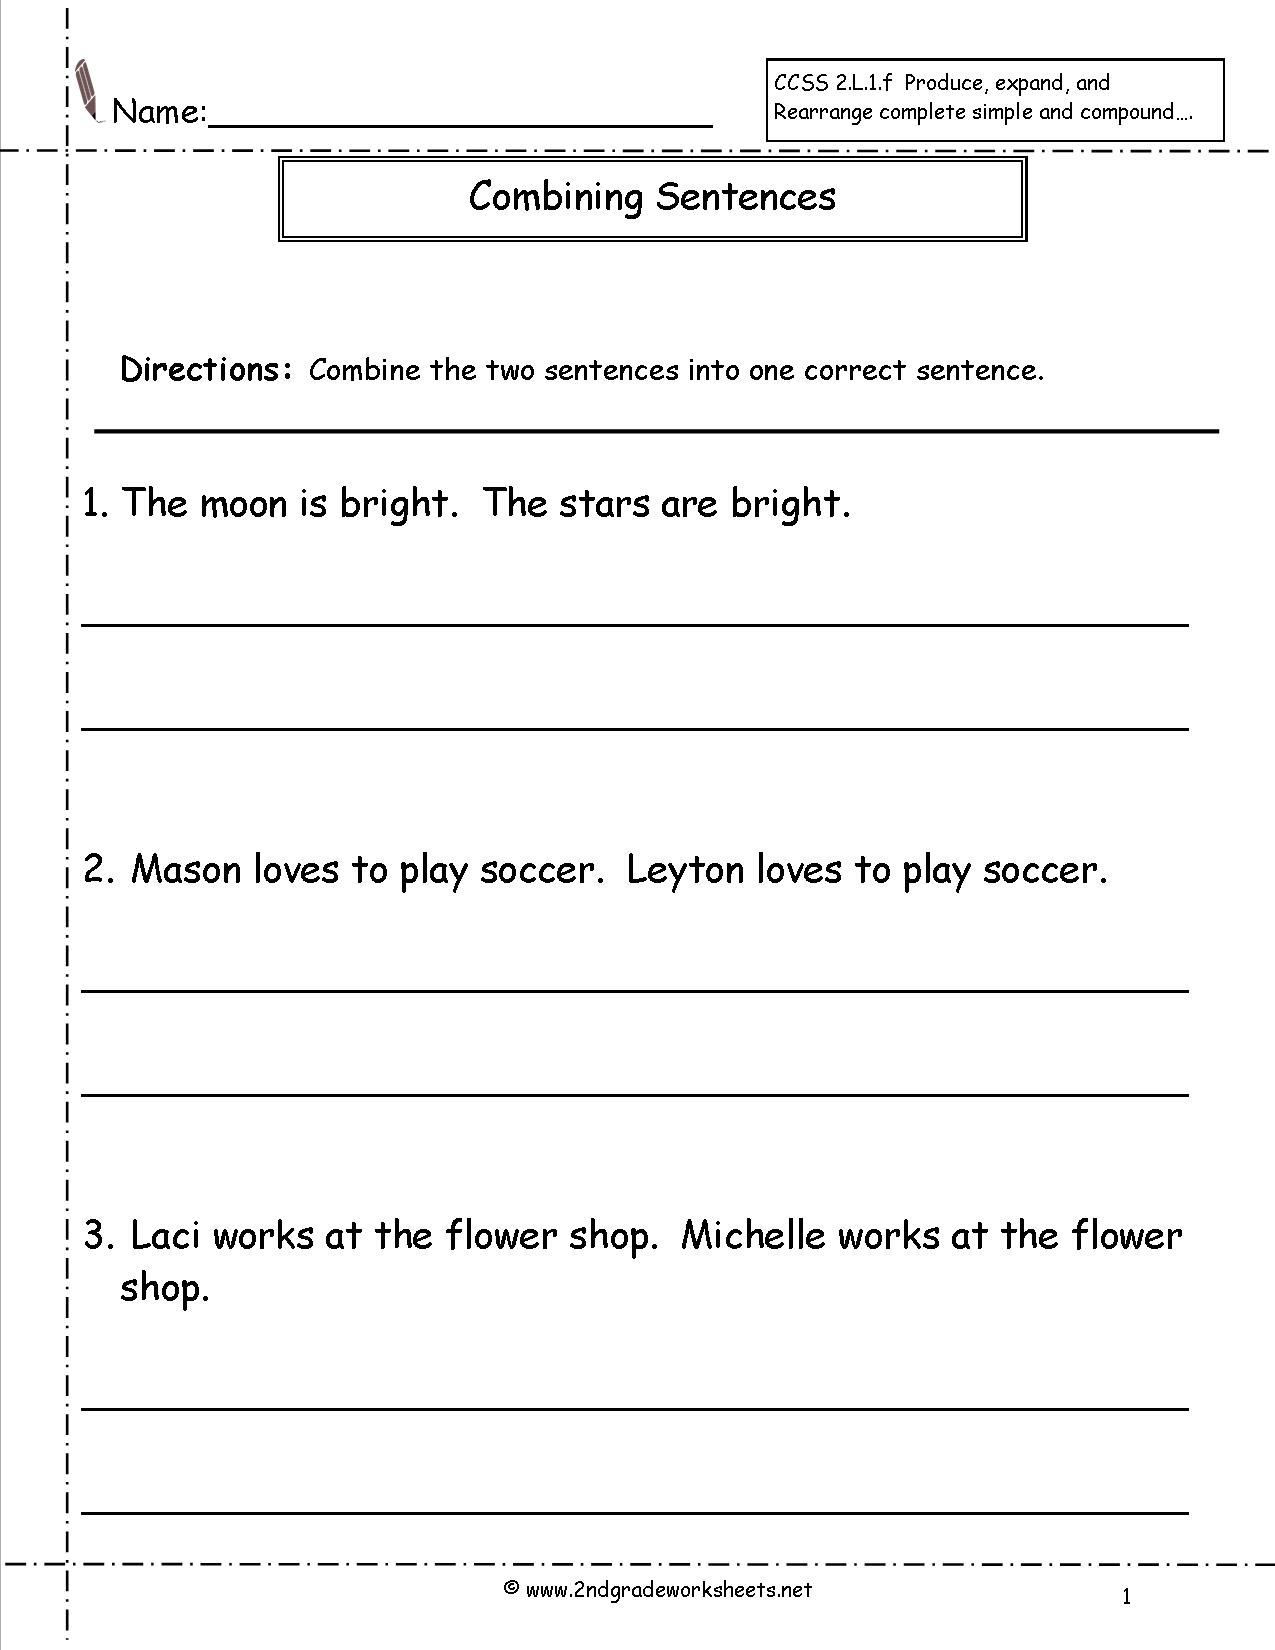 19 Best Images Of Verb Be Worksheet 1st Grade